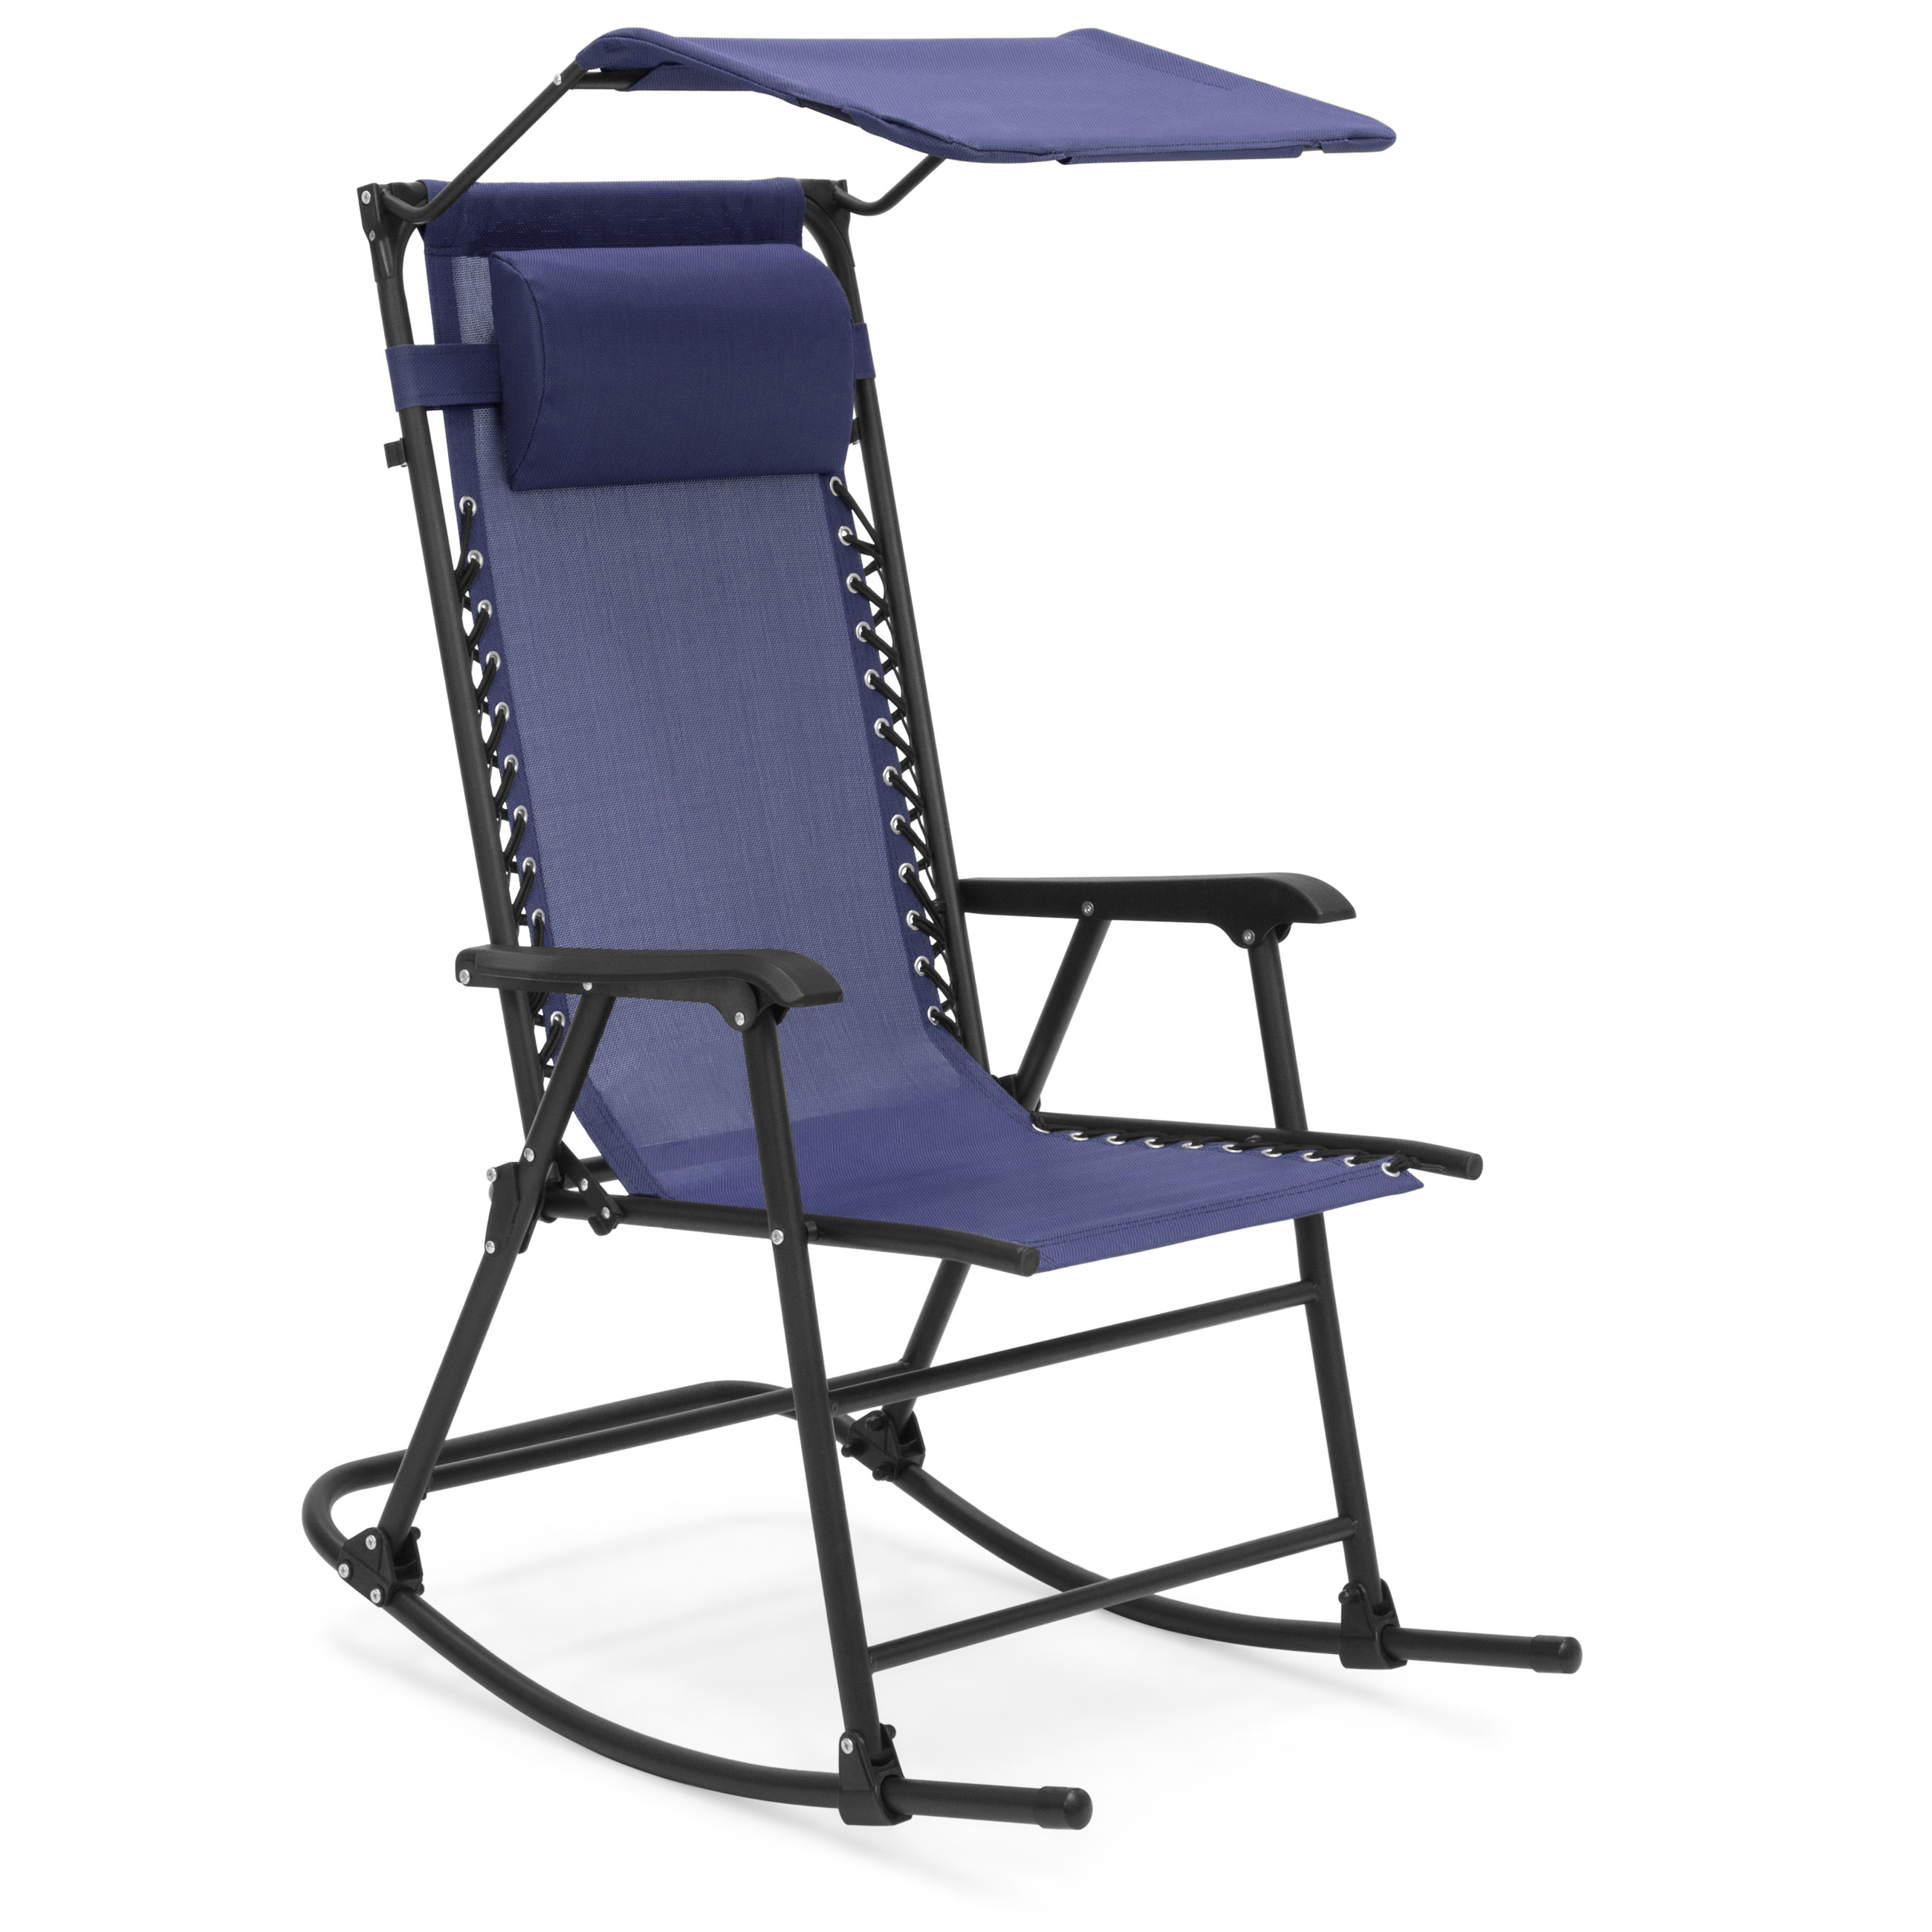 Best Choice Products Foldable Zero Gravity Rocking Patio Chair w/ Sunshade Canopy - Navy Blue